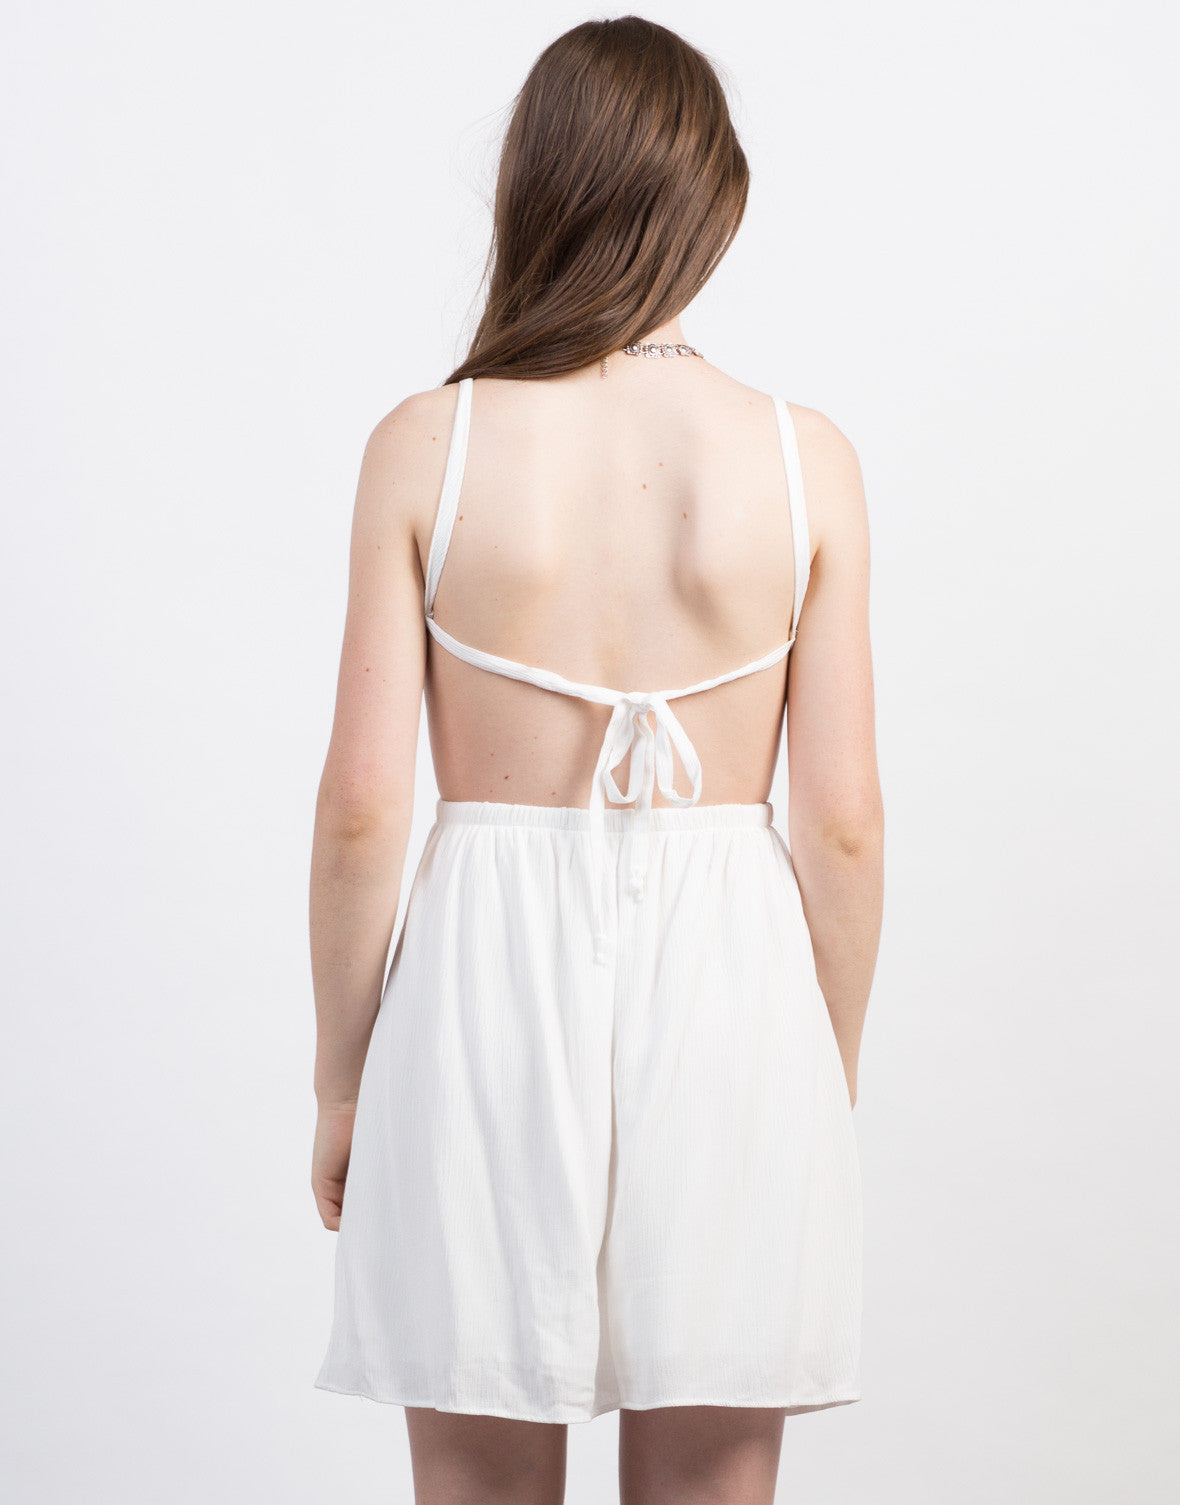 Back View of Little Open Back Crochet Dress